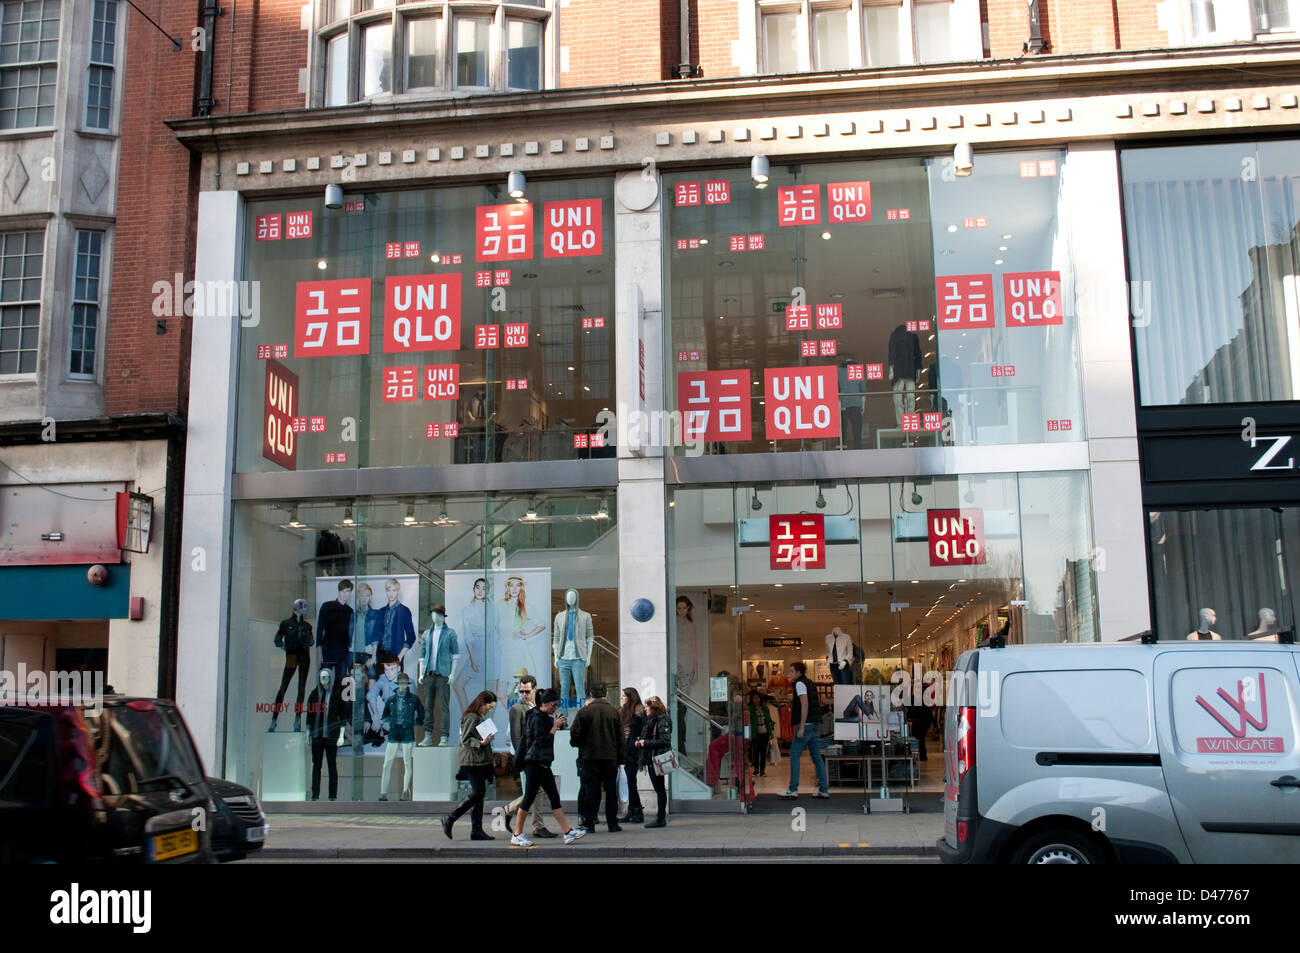 Uniqlo Store On Kensington High Street London Uk Stock